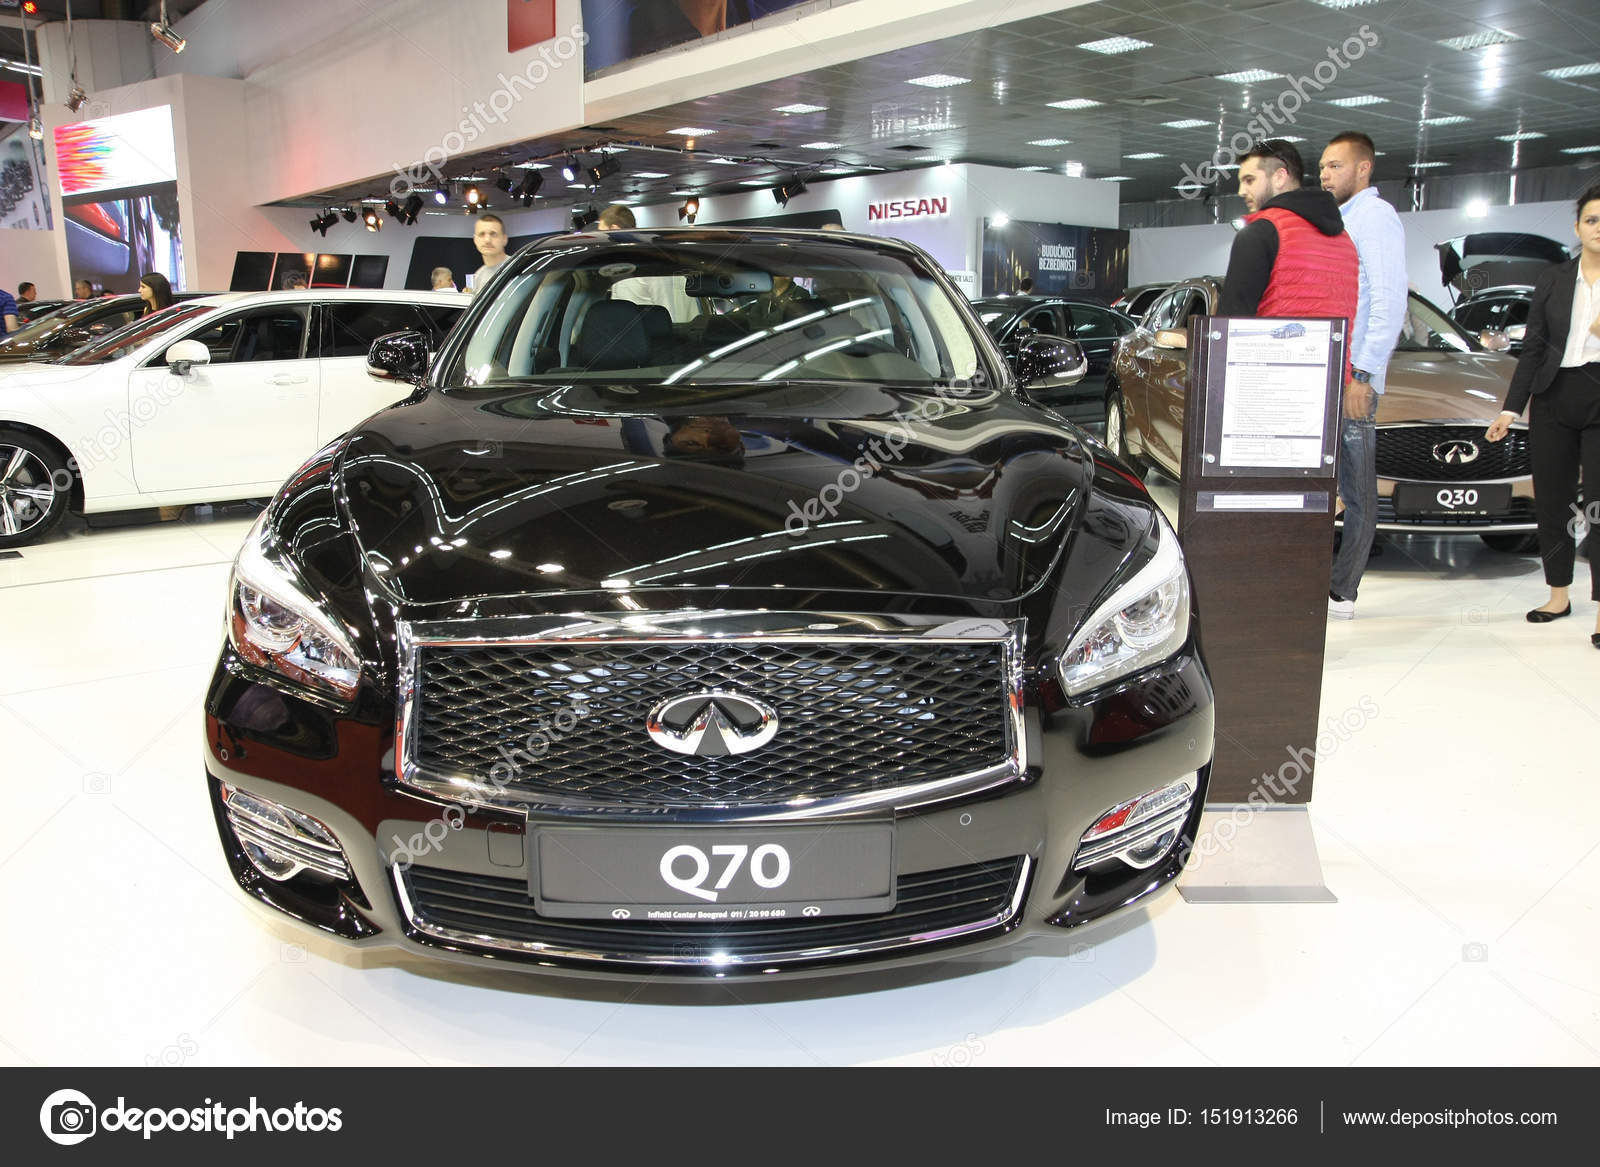 Infiniti At Belgrade Car Show Stock Editorial Photo Tdjoric - Infiniti car show